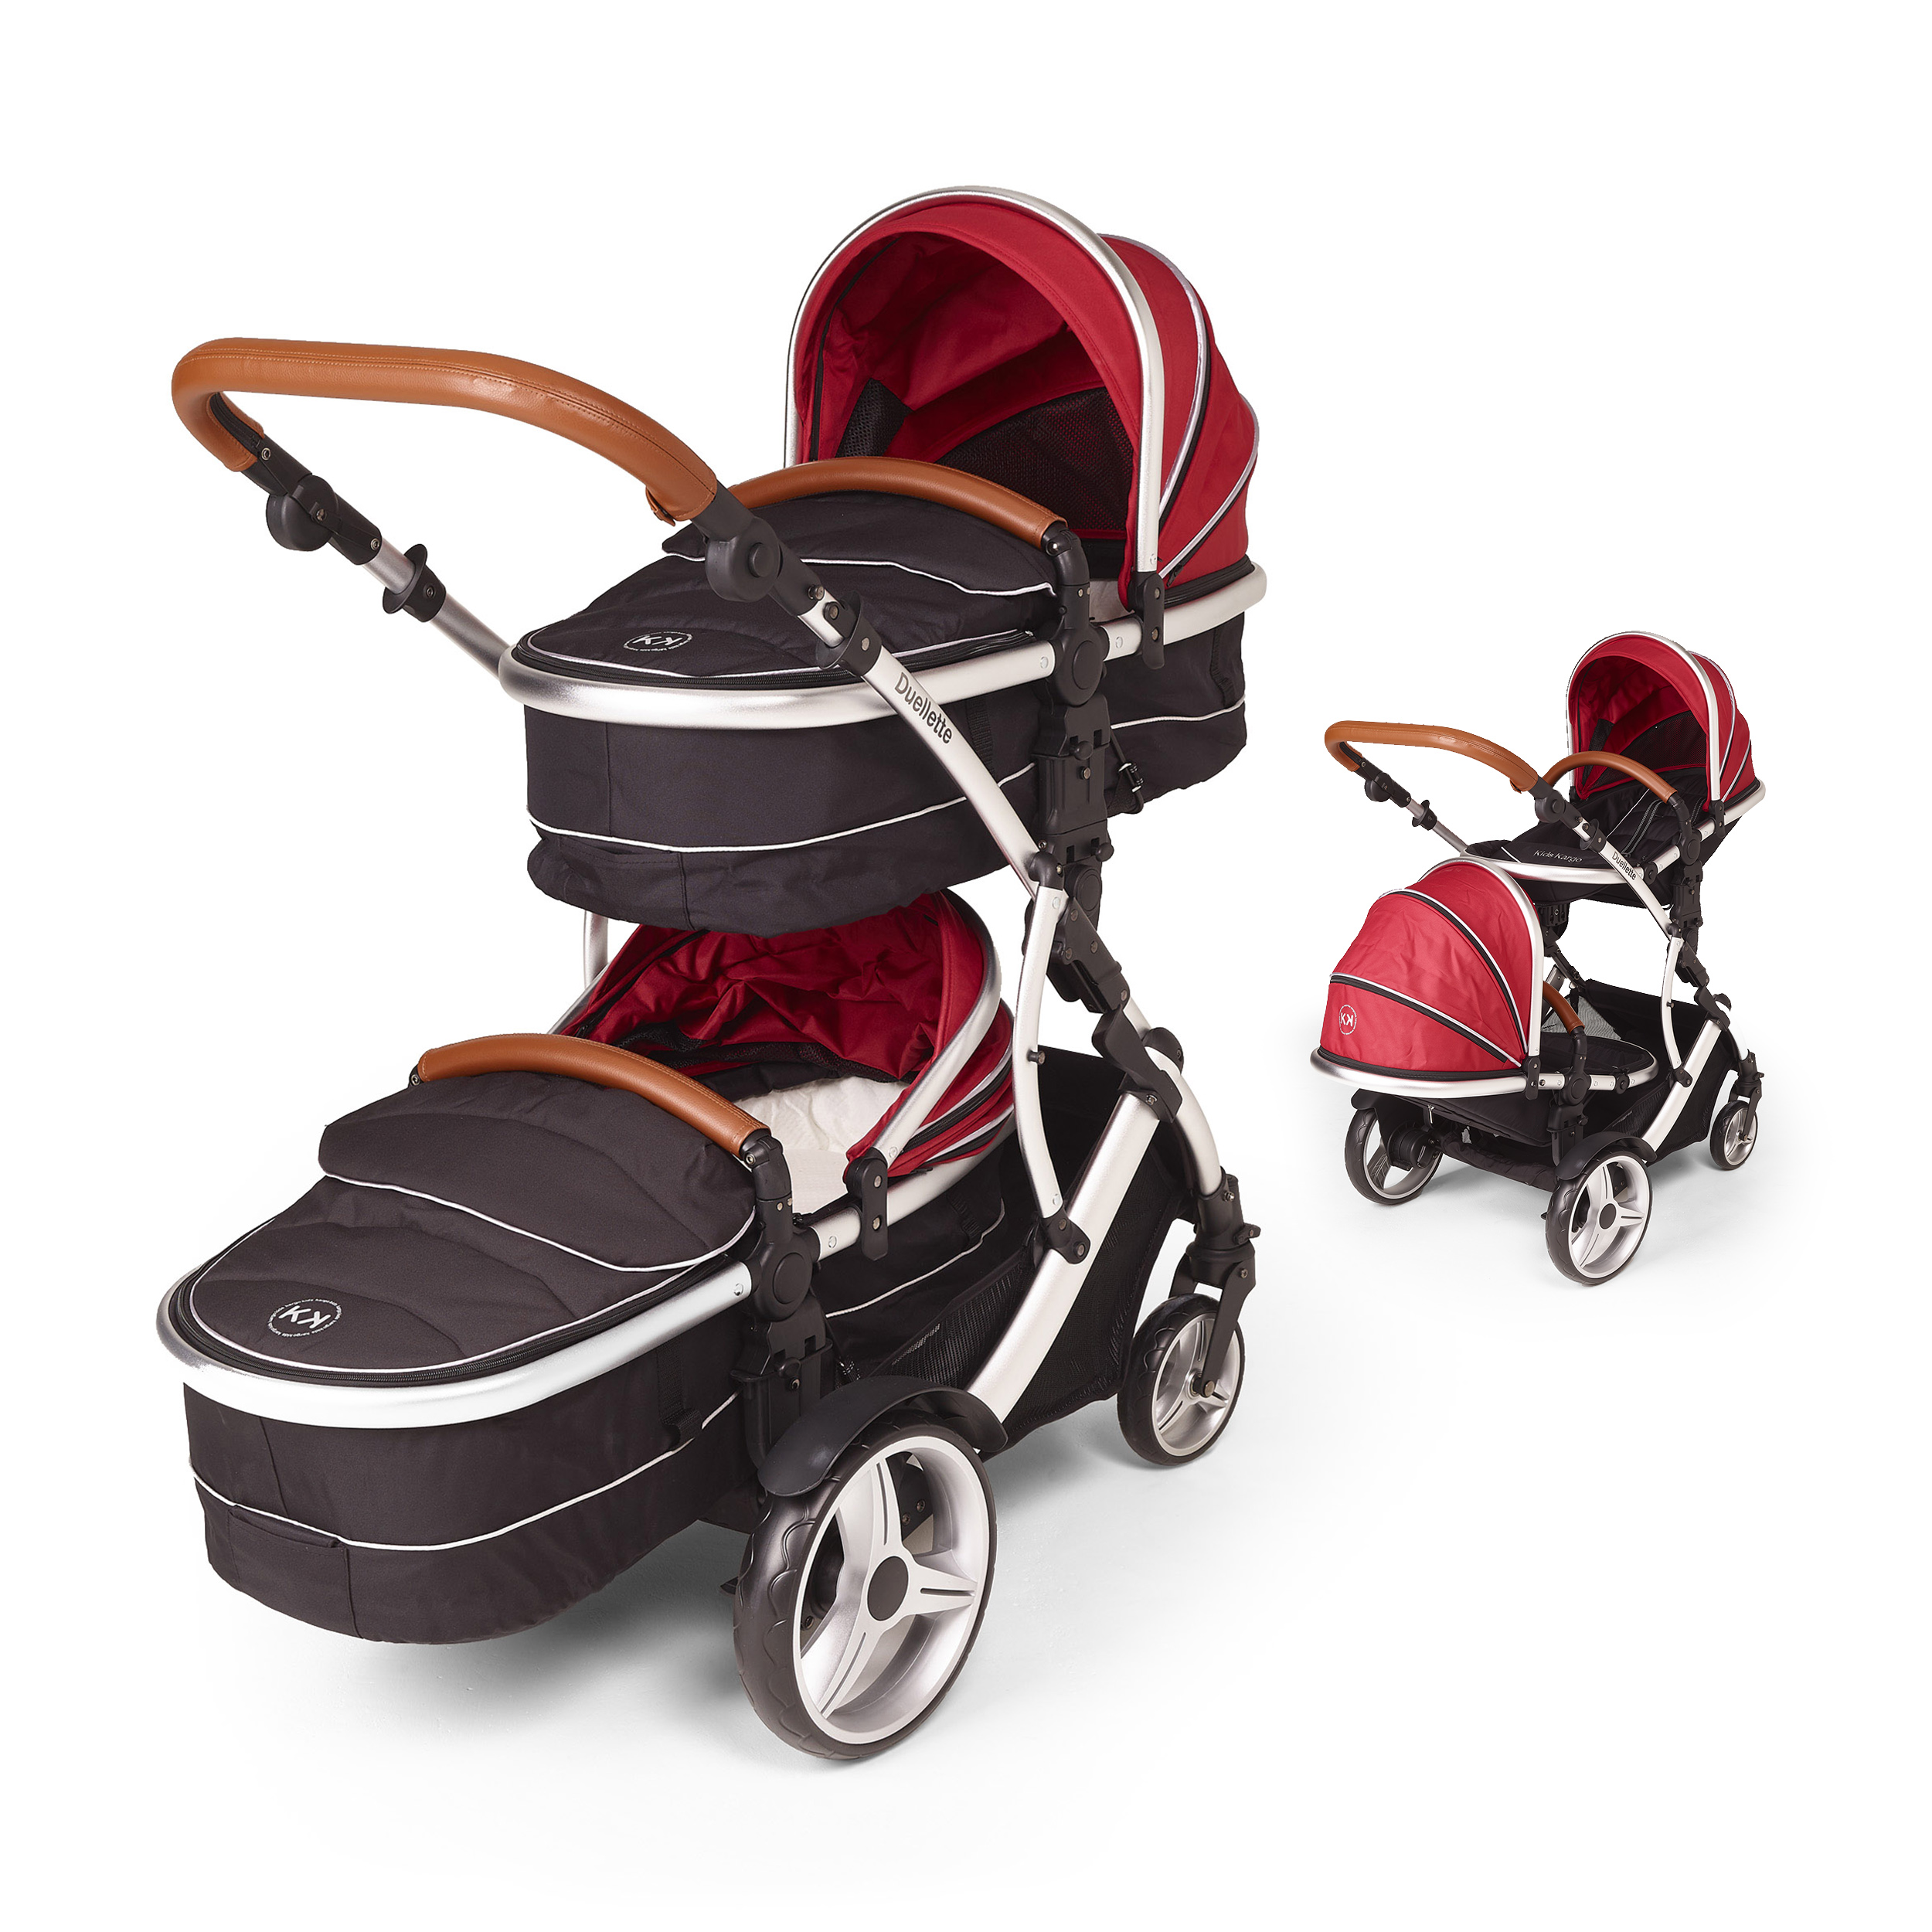 Combi Double Stroller Side By Side Buy Now Pay Later Kids Kargo Duellette Combi Plus